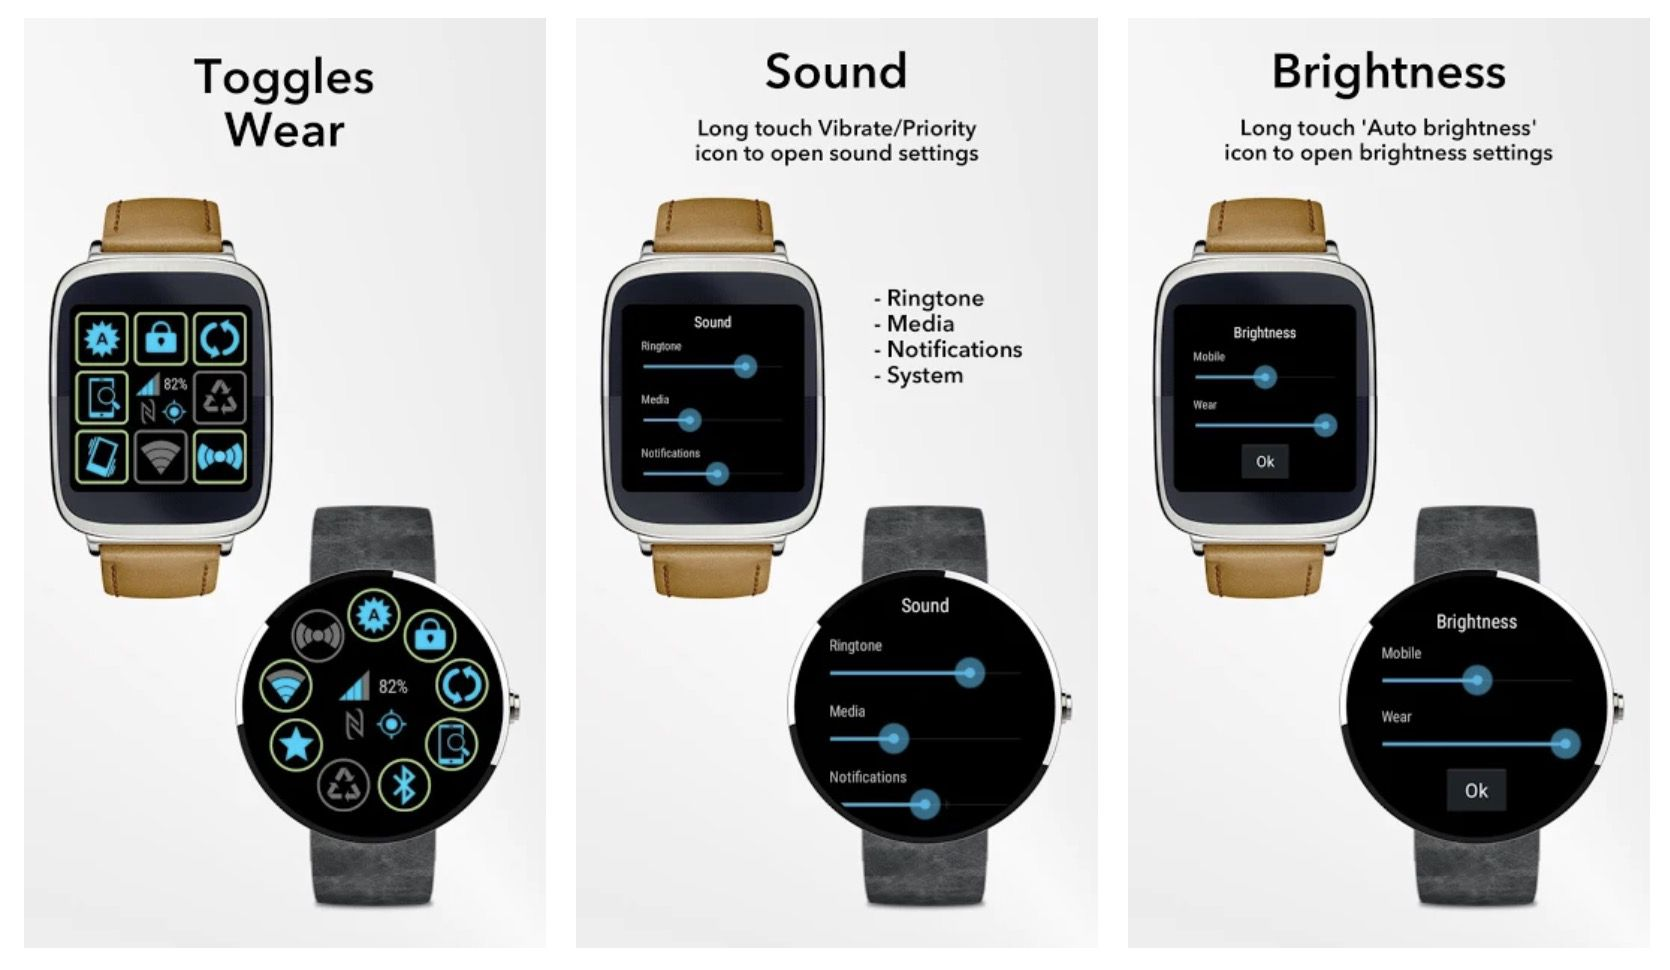 Toggles for Wear app for Wear OS